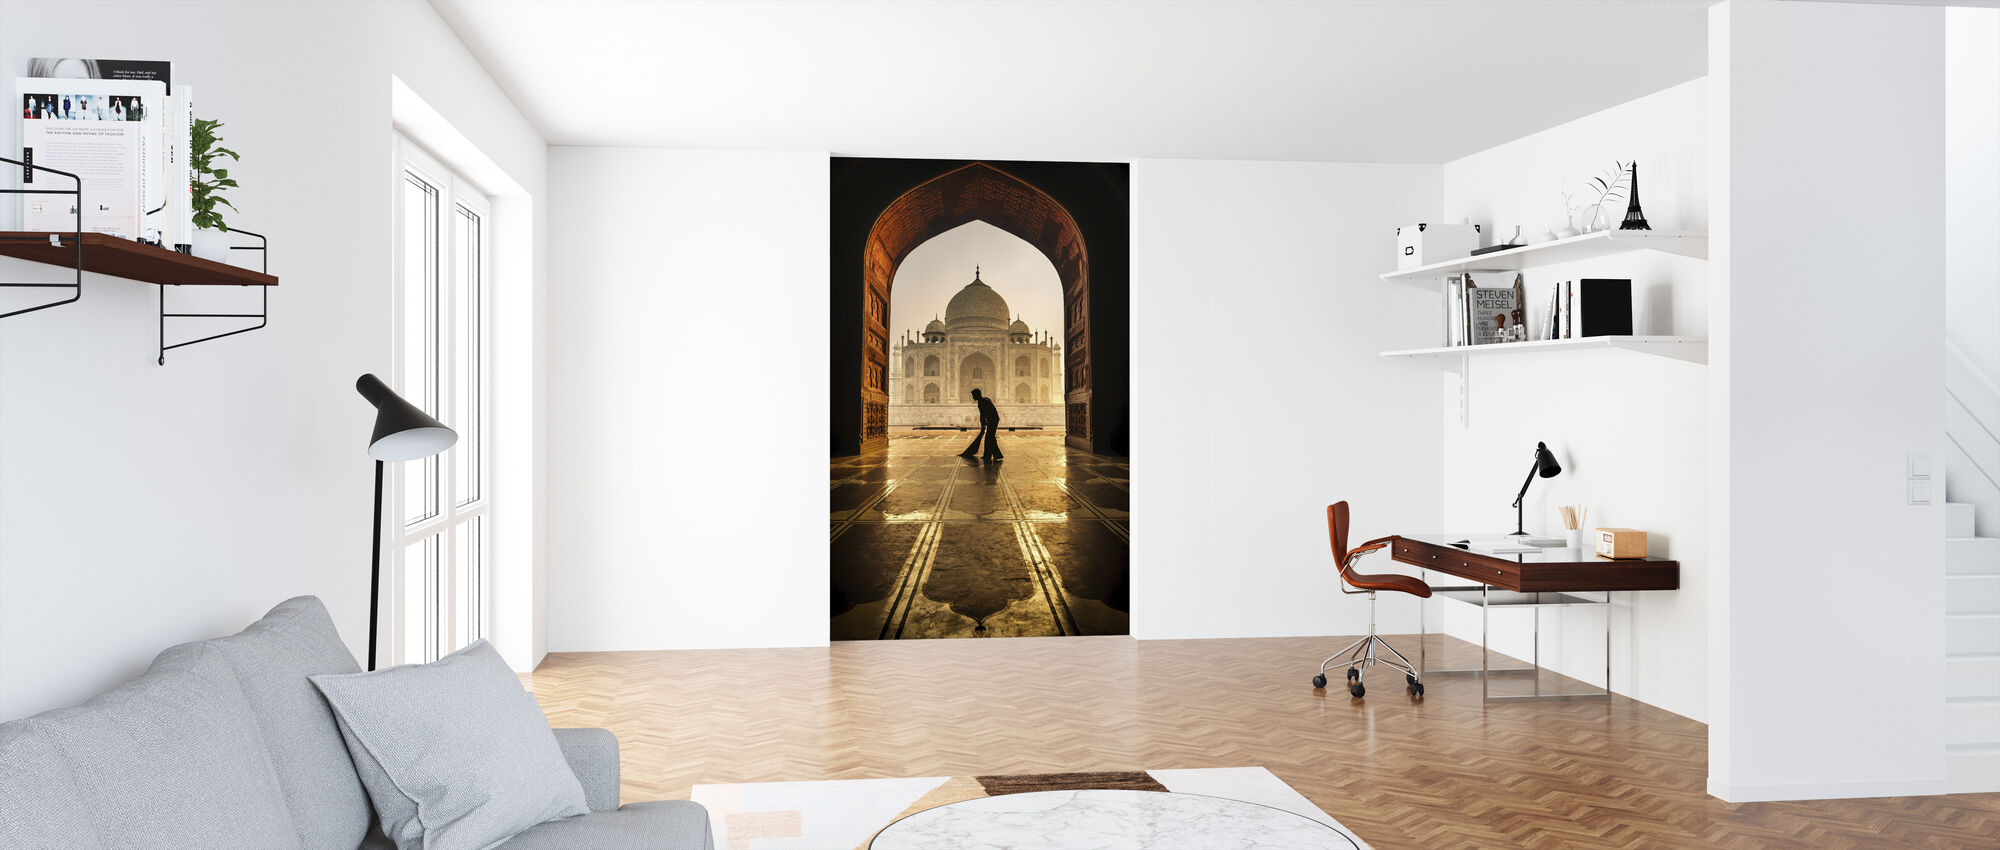 Taj Mahal Cleaner - Wallpaper - Office